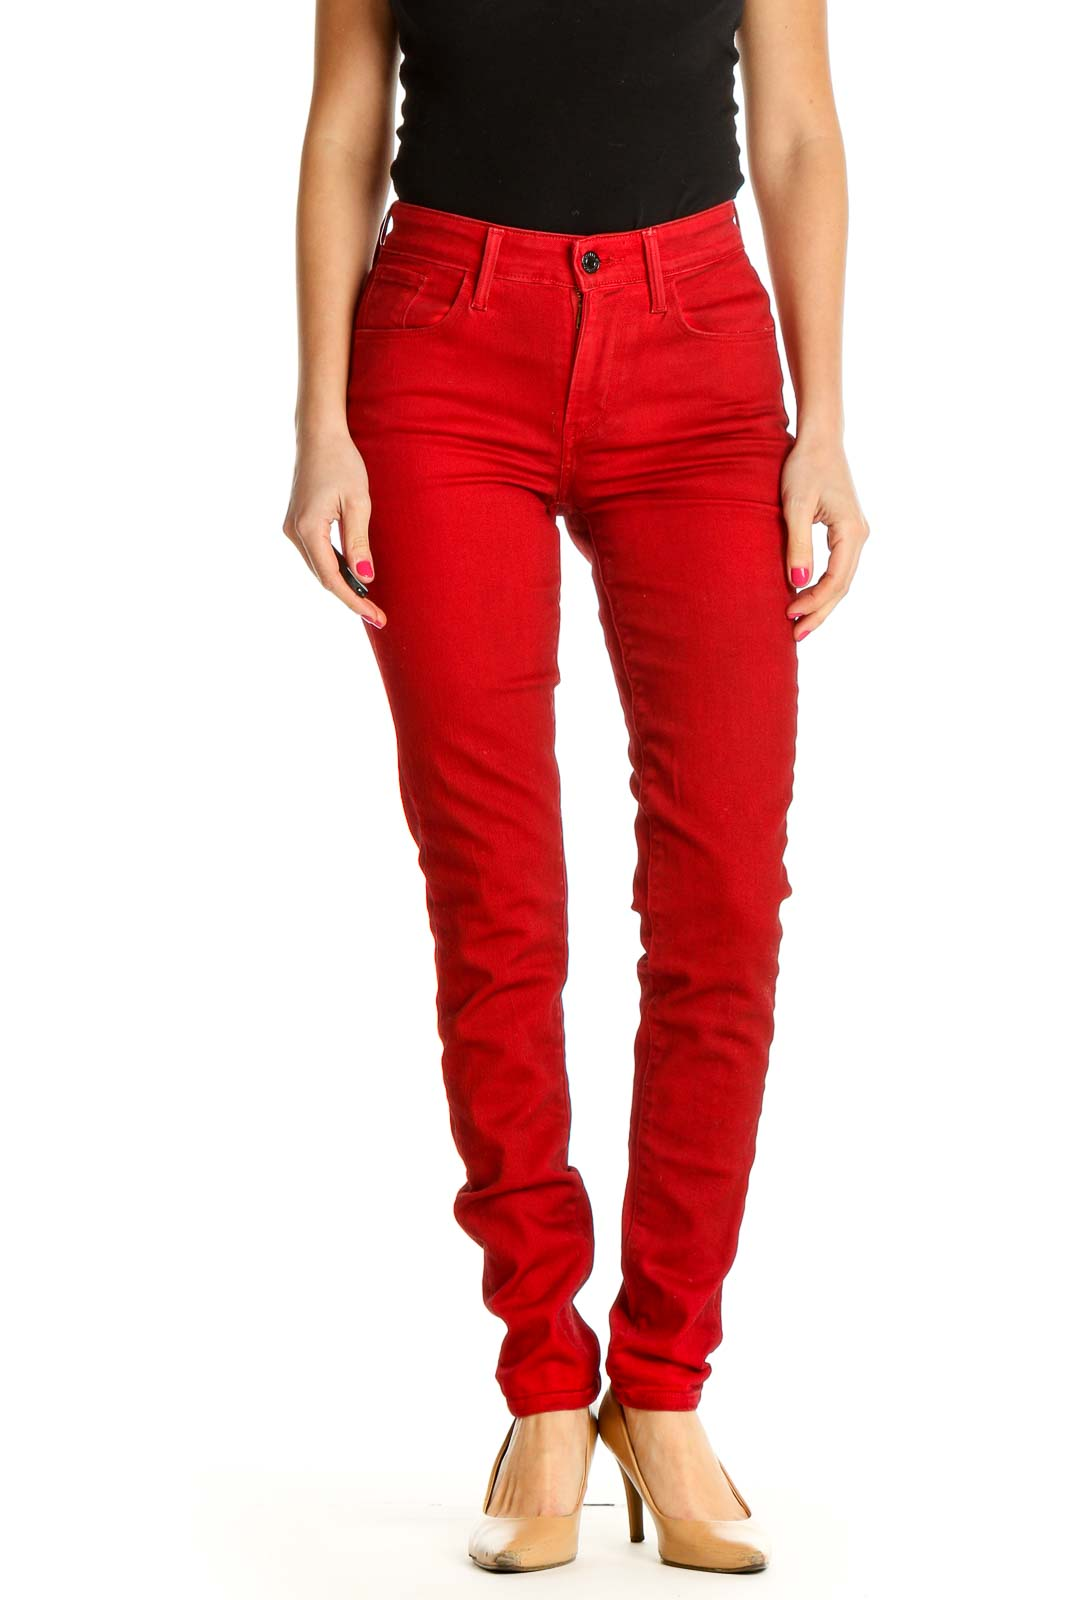 Red Solid All Day Wear Trousers Front